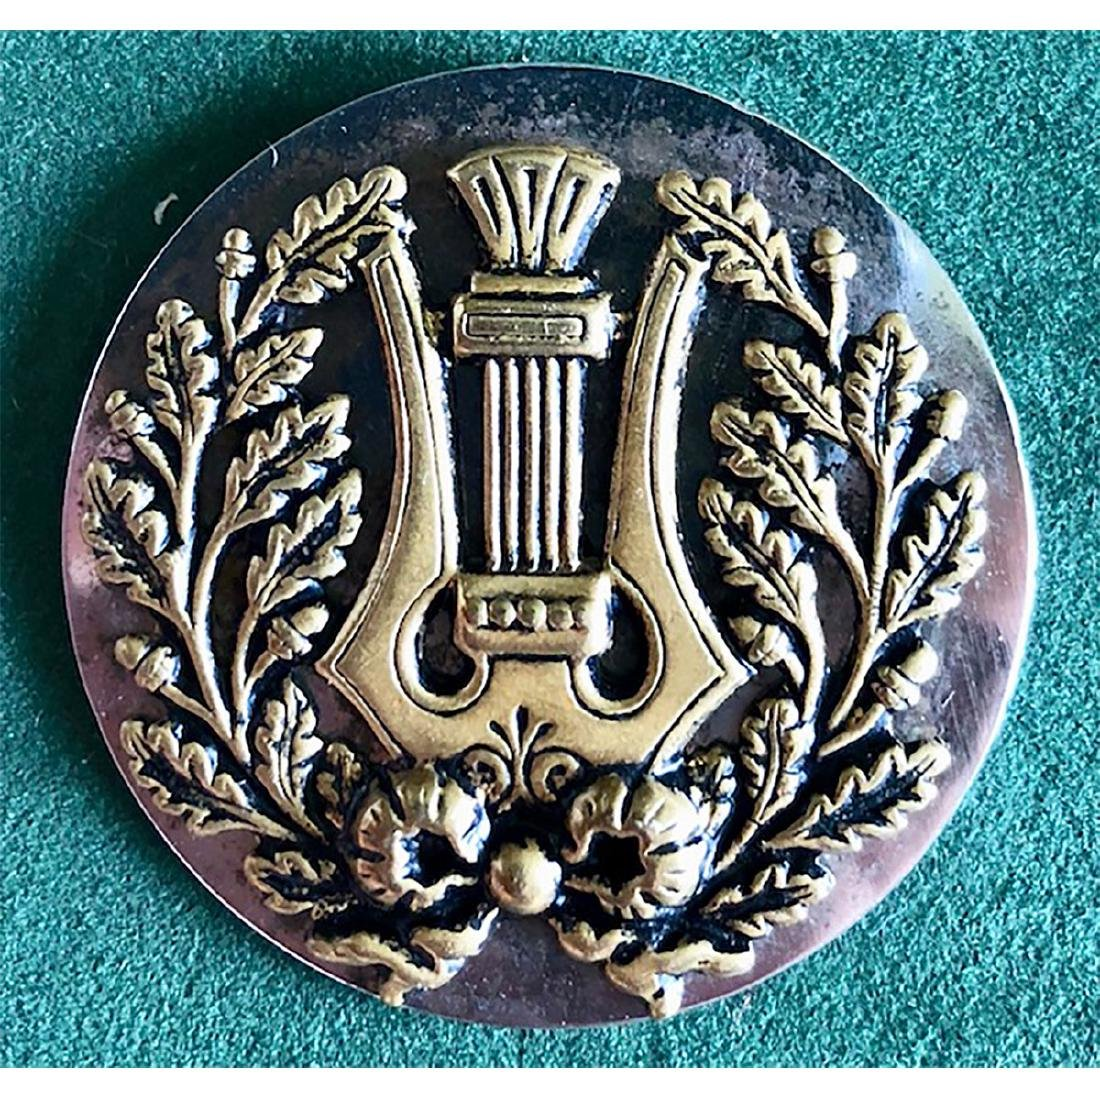 23 M/L ANGELS/GNOMES AND MUSICAL INSTRUMENT BUTTON - 4